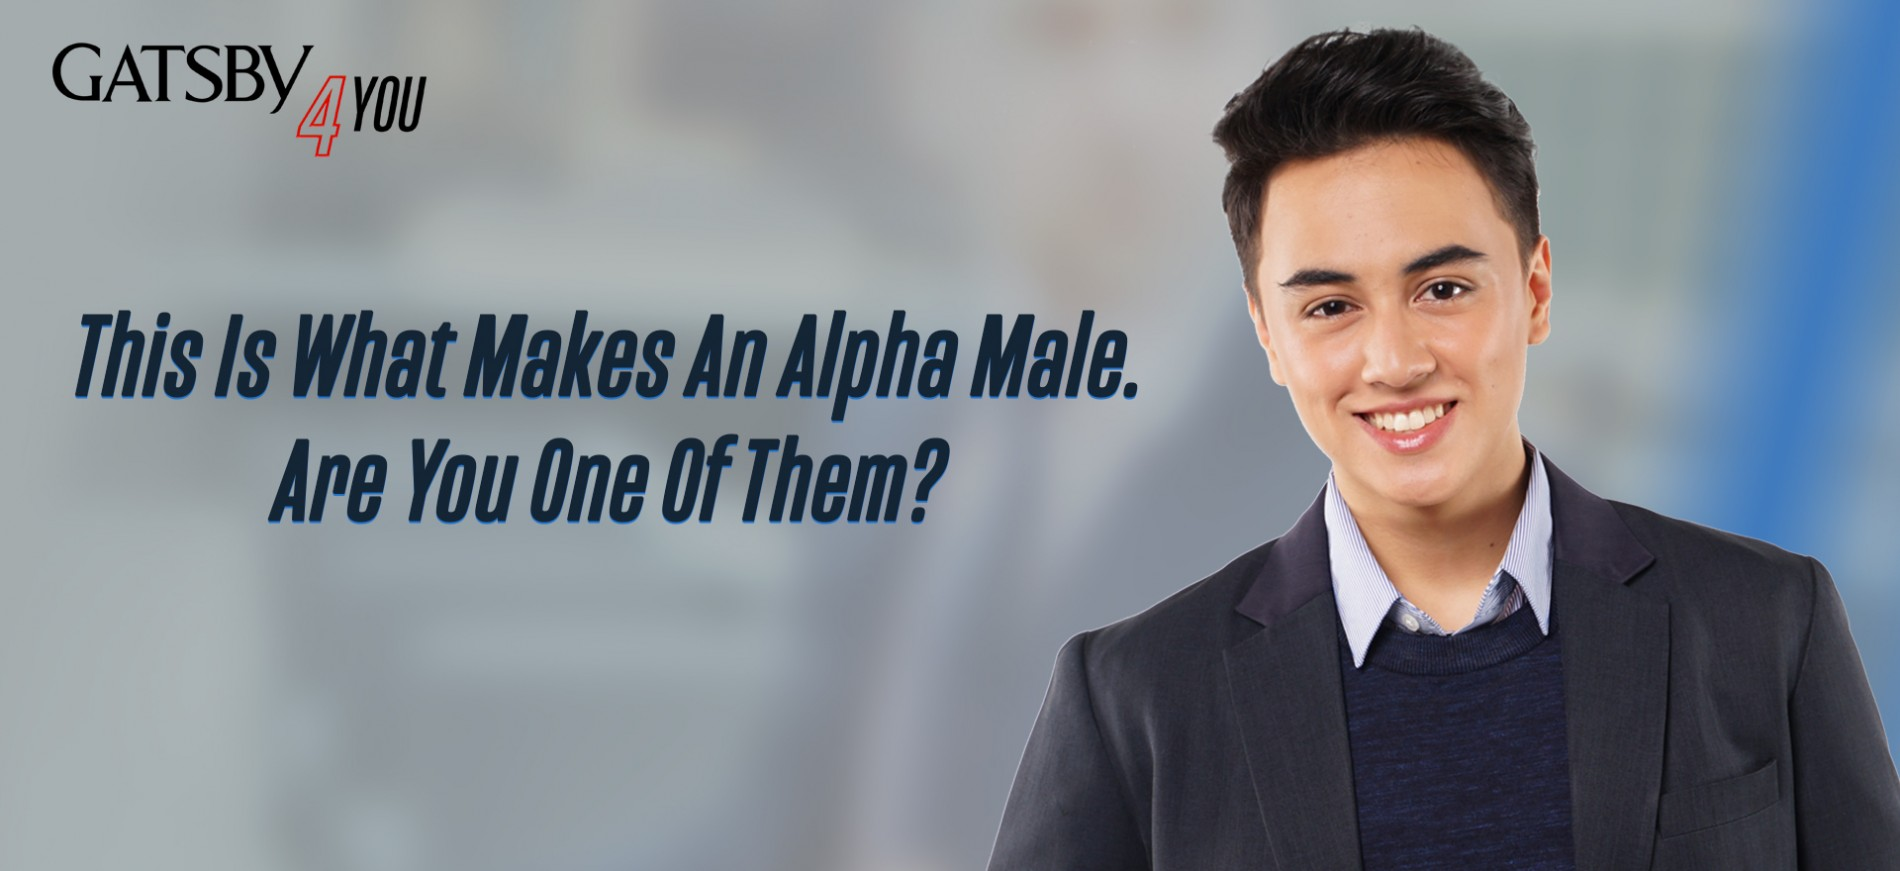 GATSBYP hilippines What makes an alpha male?